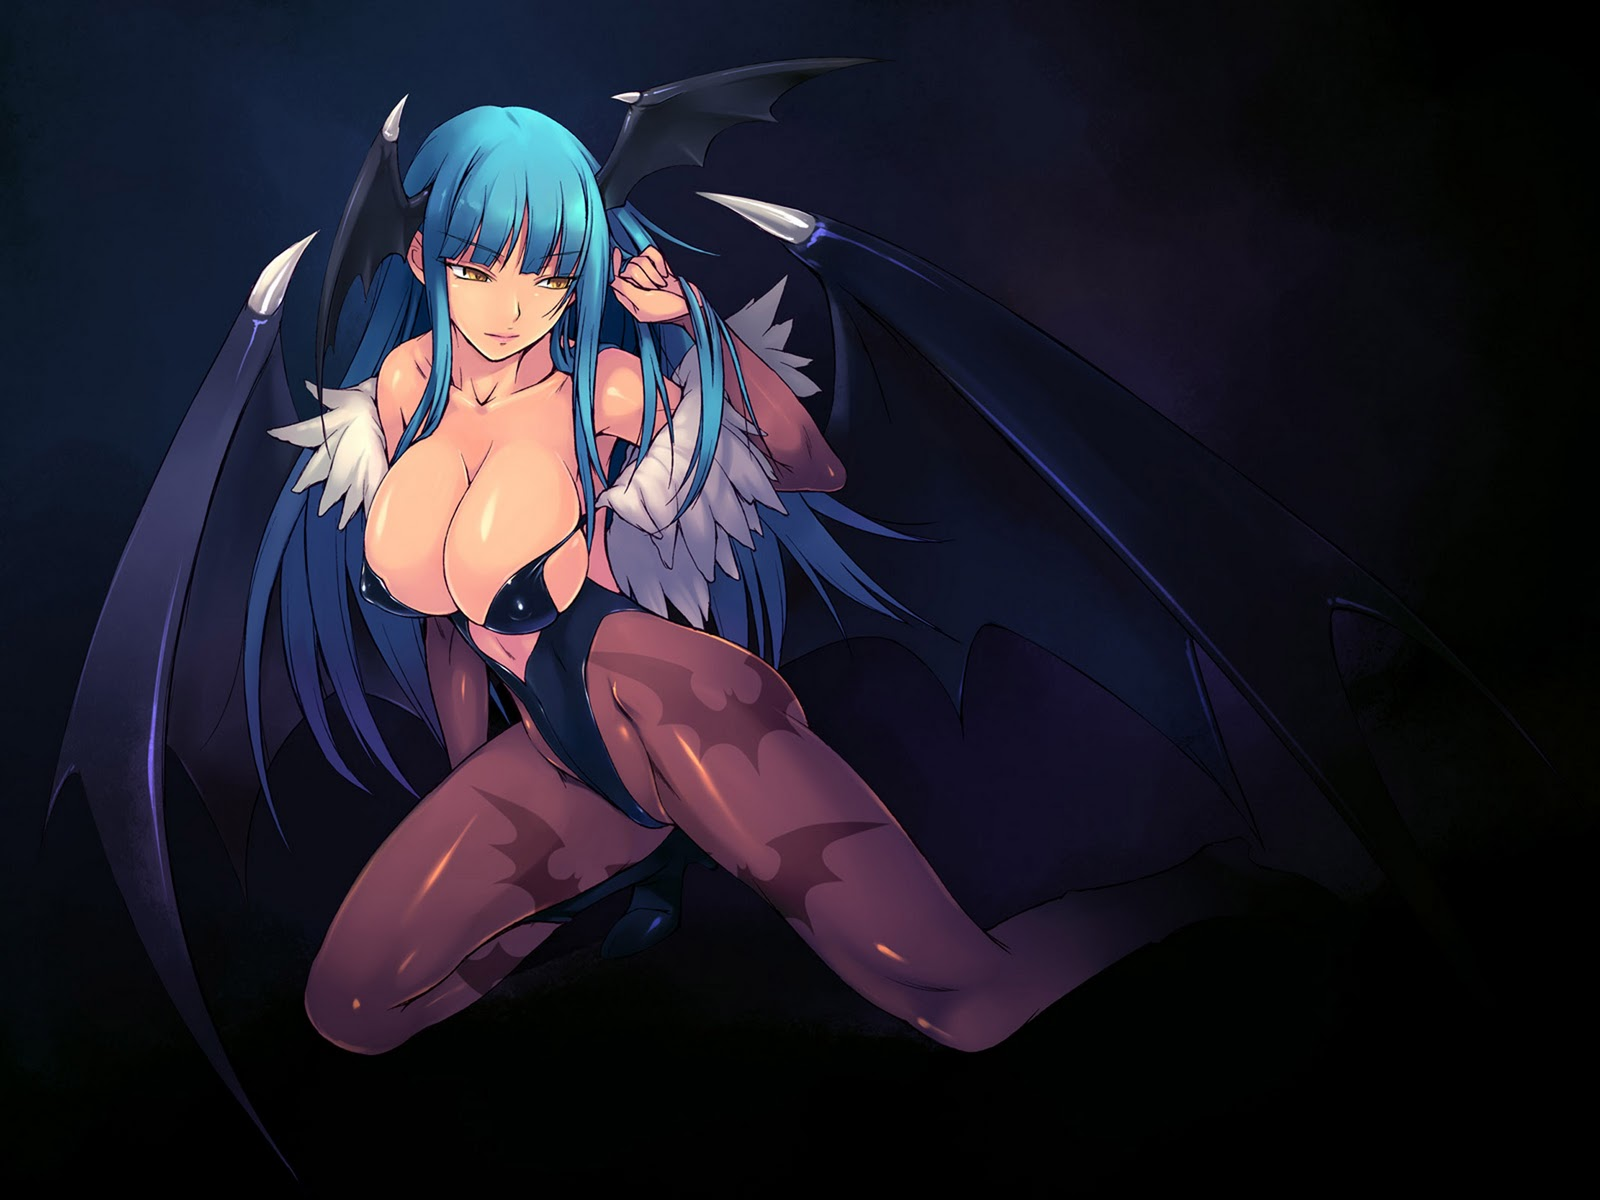 http://2.bp.blogspot.com/-mOxLz3NTZL0/TyMto61WG1I/AAAAAAAADek/gaTWo60eHJY/s1600/Morrigan+Aensland+vampire++darkstalkers+game+anime+tits+huge+boobs+girl+pinup+drawing.jpg